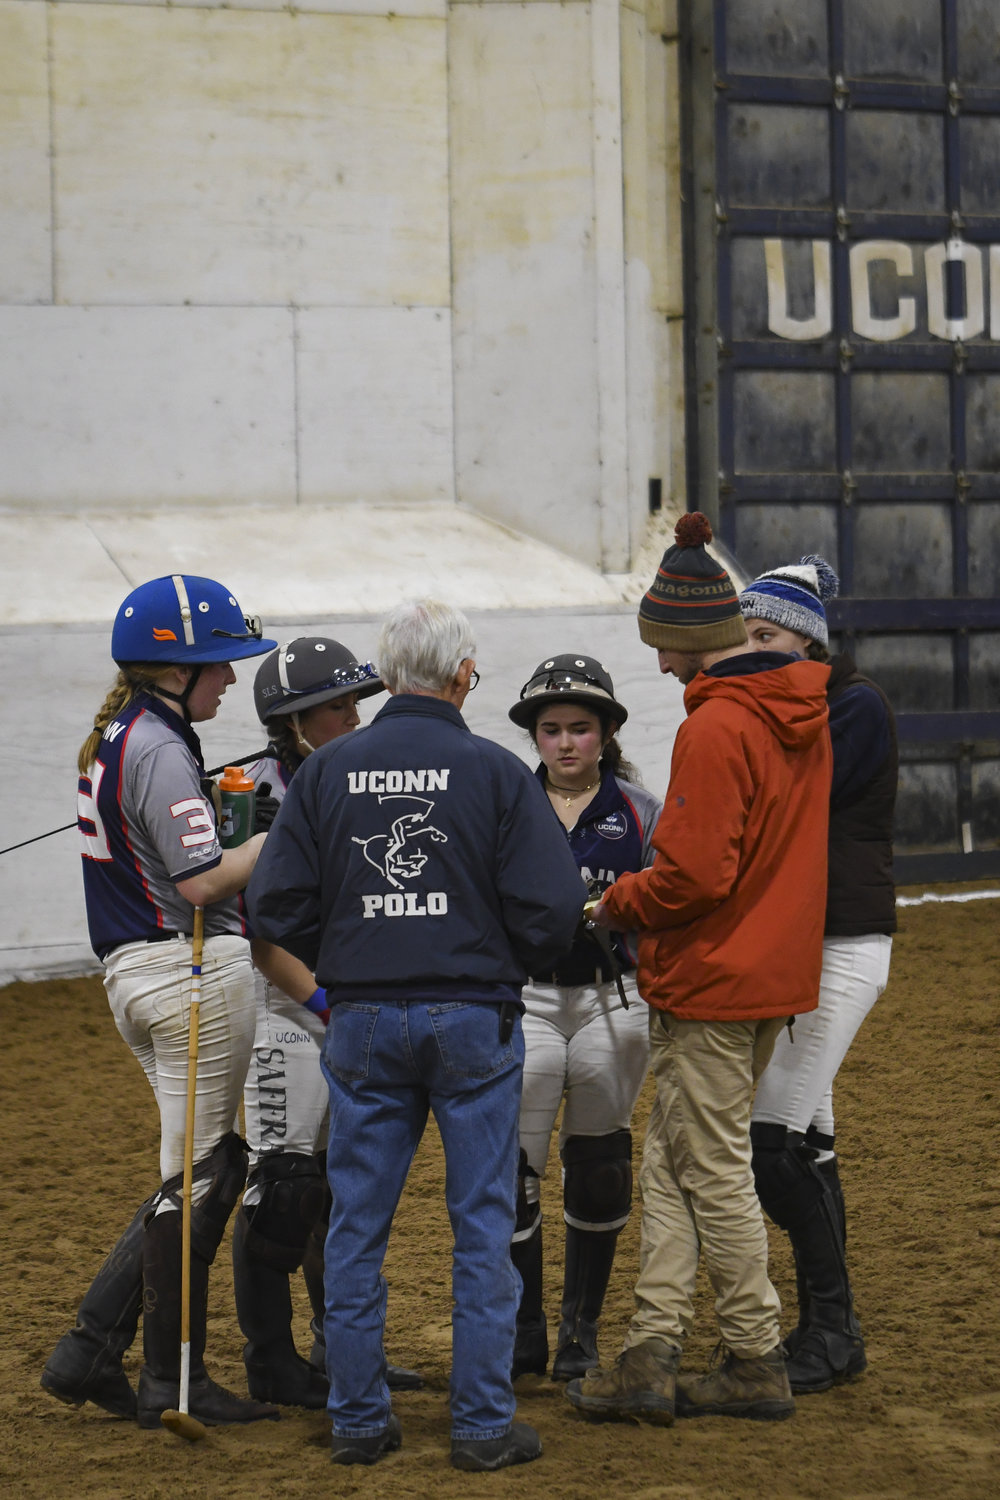 Varsity players Nicole Kula, Sage Saffran, Anders Carlton, and Julia Marrinan meet with their head coach Patrick Marinelli to reflect on their gameplay.